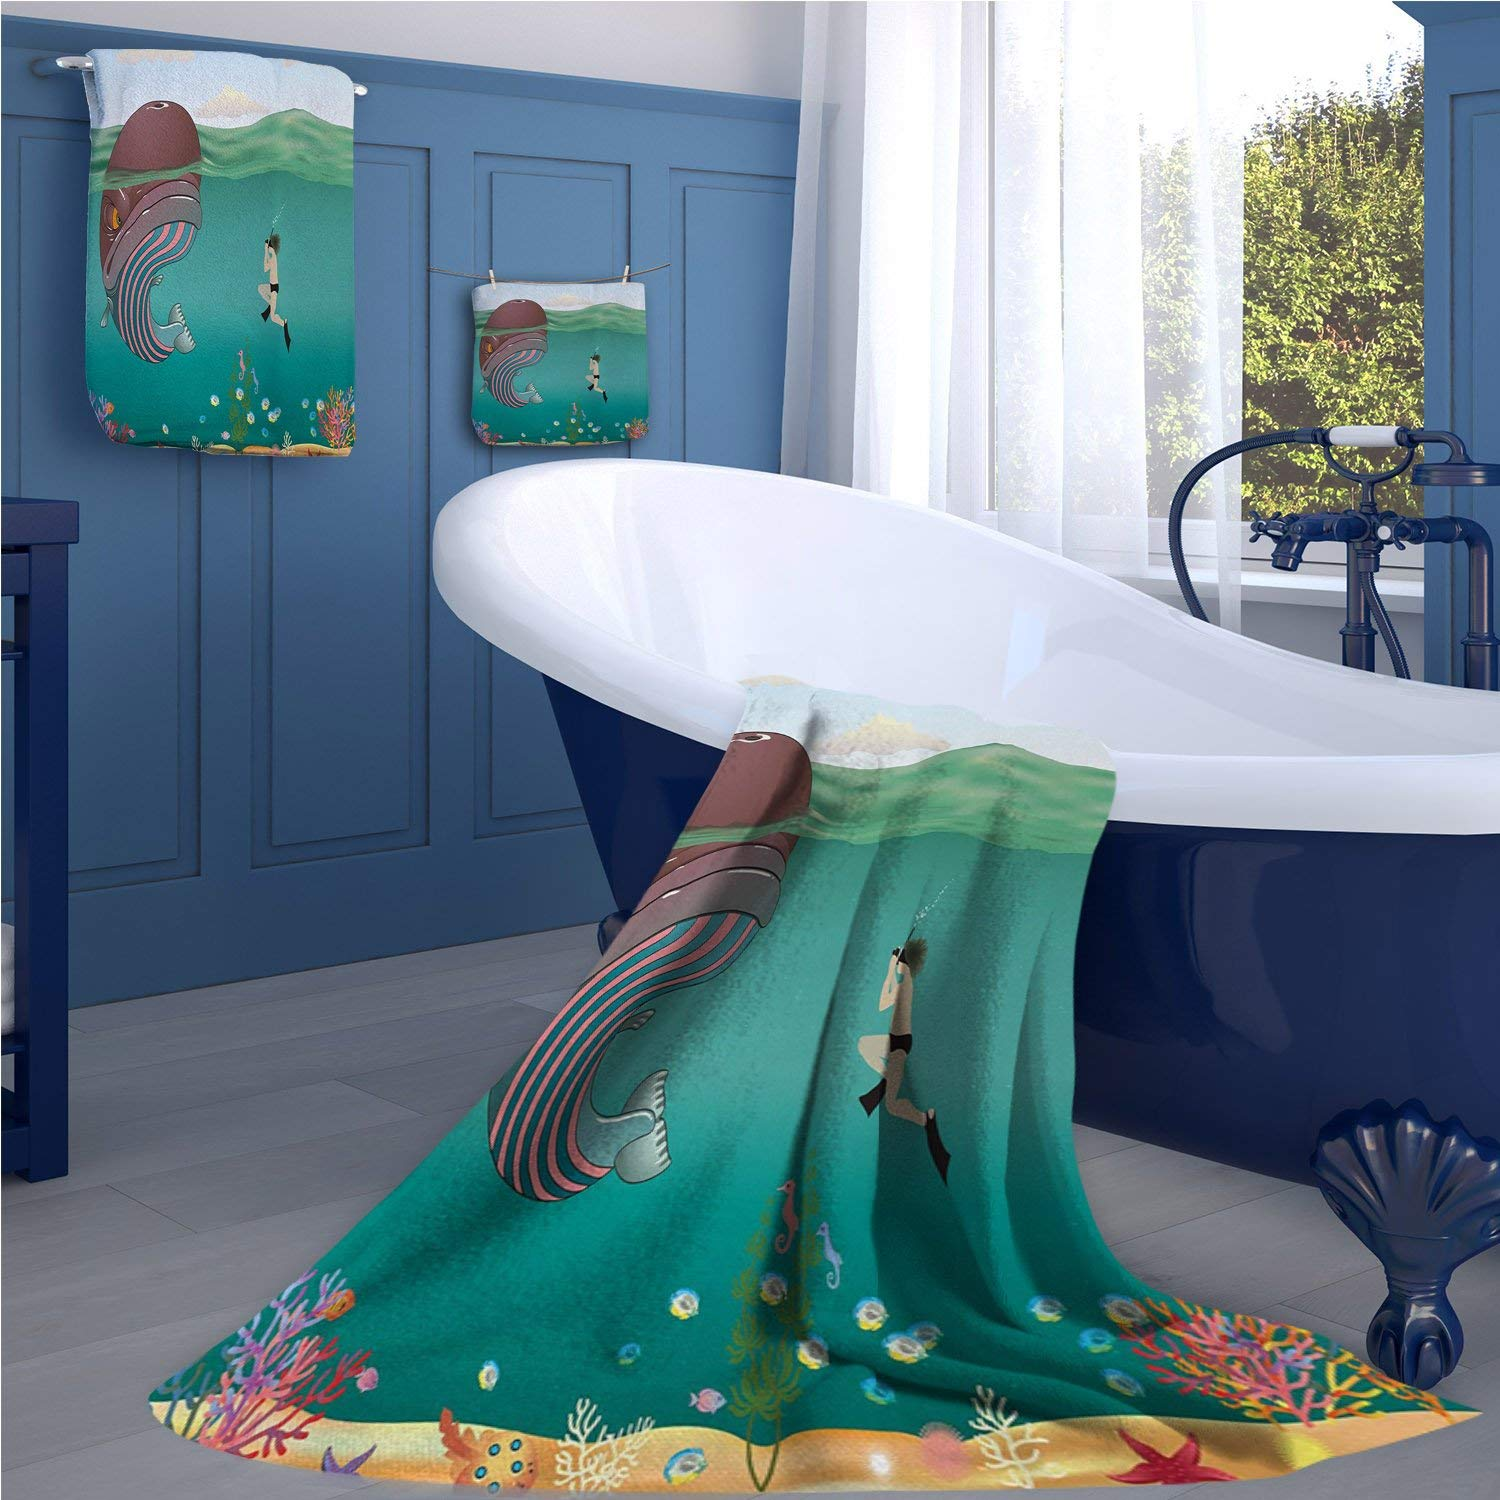 familytaste Whale Extra wide bathroom accessories Striped Huge Whale Character meet with a Diver in Ocean with Shells Cartoon Image luxury hand towels set Multi Colored